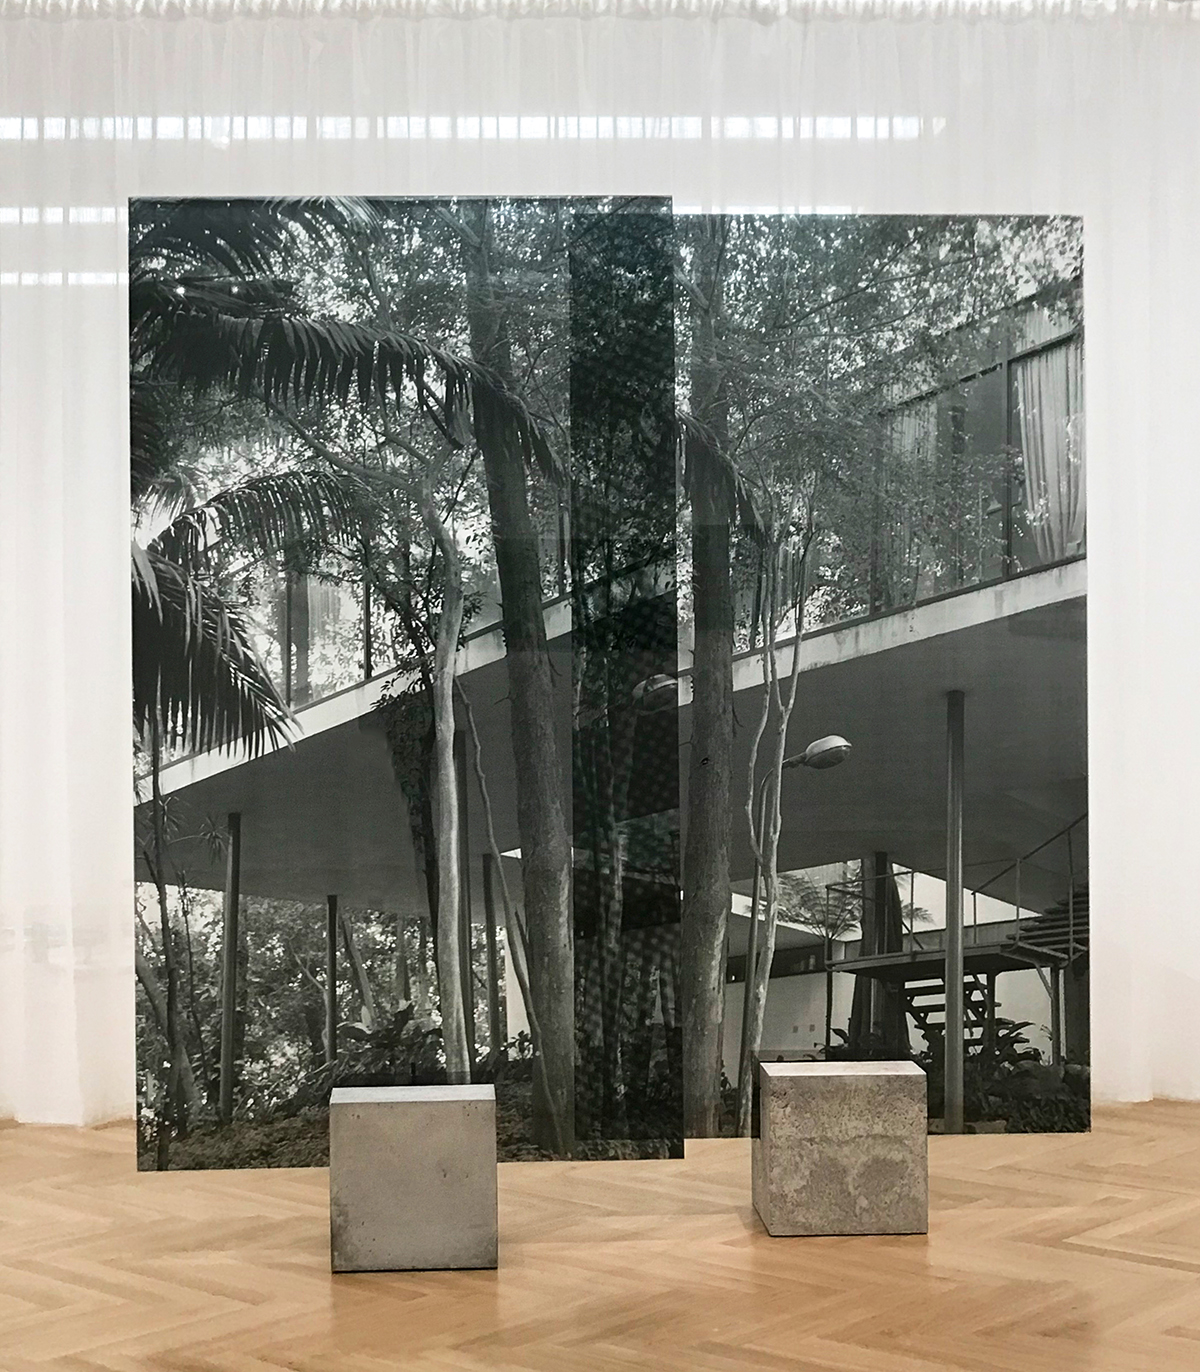 Stilted House , 2017 2-panel silkscreen print on glass each panel: 94-1/2 x 53-1/8 inches, 240 x 135 cm Edition of 5